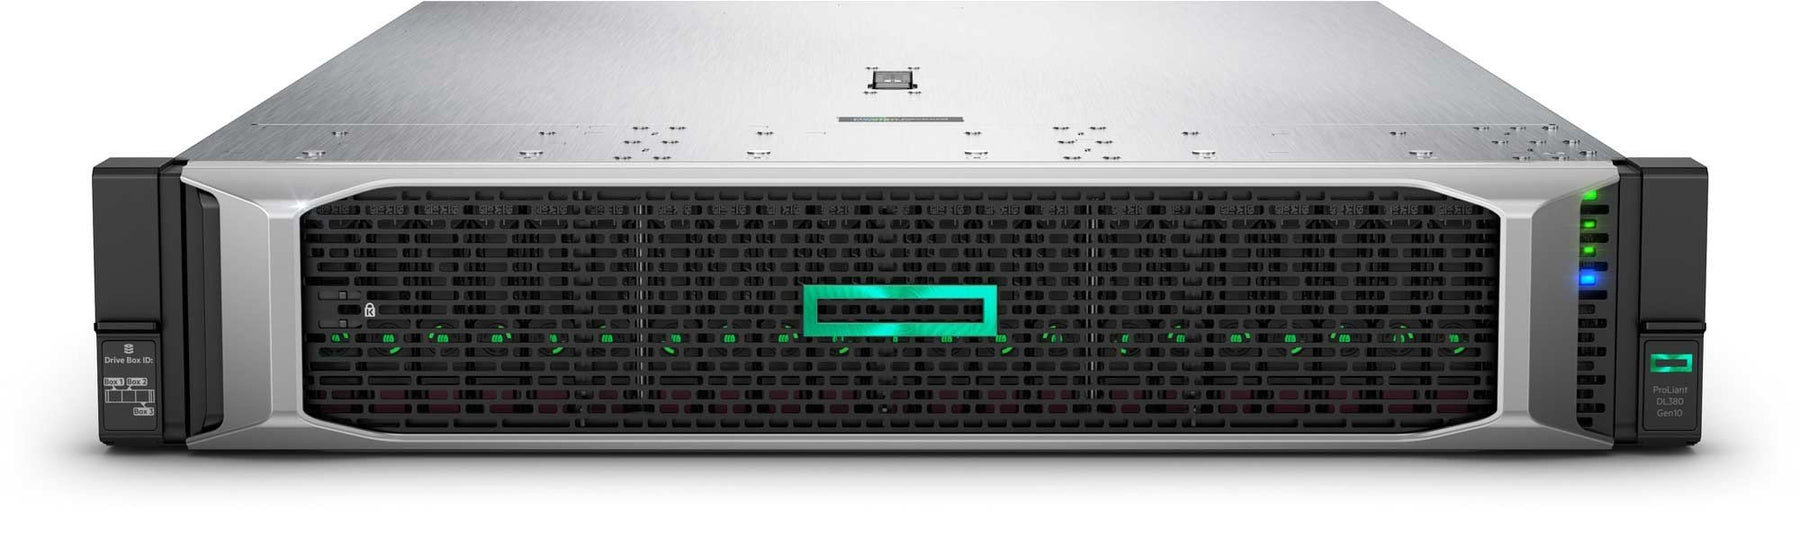 P24840-B21 - HPE DL380 GEN10 4210R 2.4 GHz 1P 32G 24SFF Server